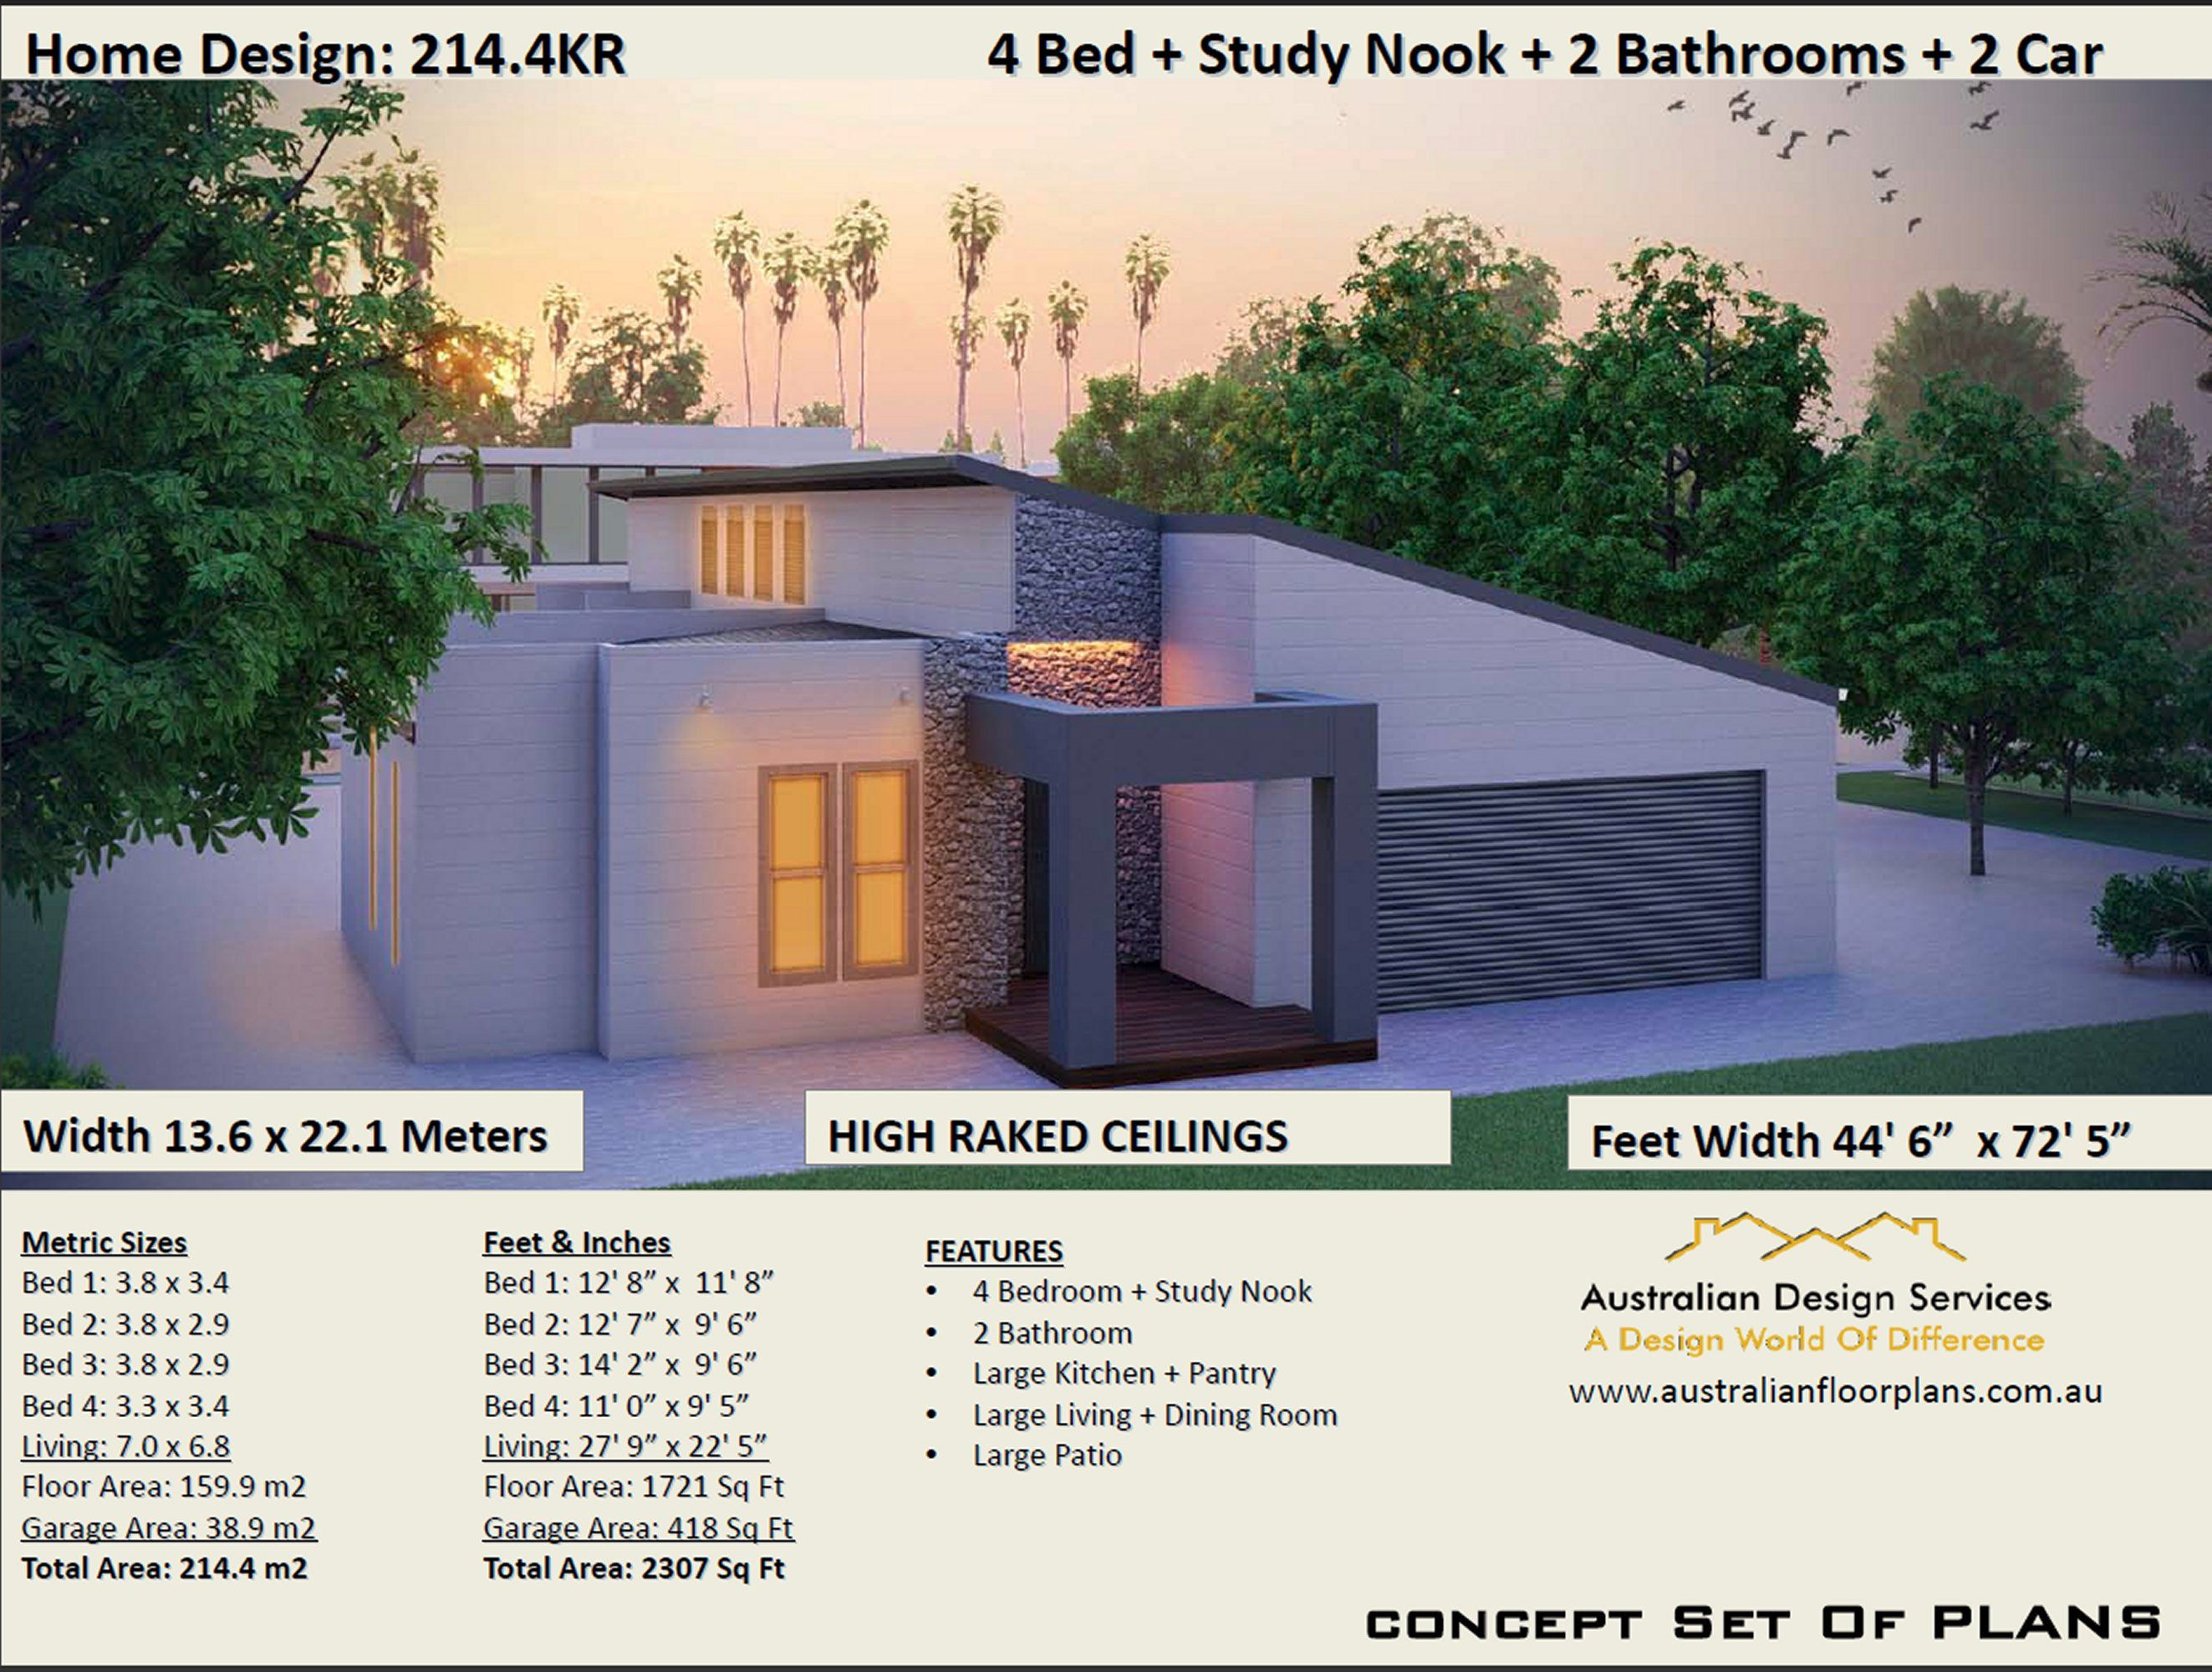 Skillion Roof House Plans 4 Bedroom House Plans Double Garage Home Plans 4 Bedroom Design Affordable House Plans House Plans Australia Skillion Roof